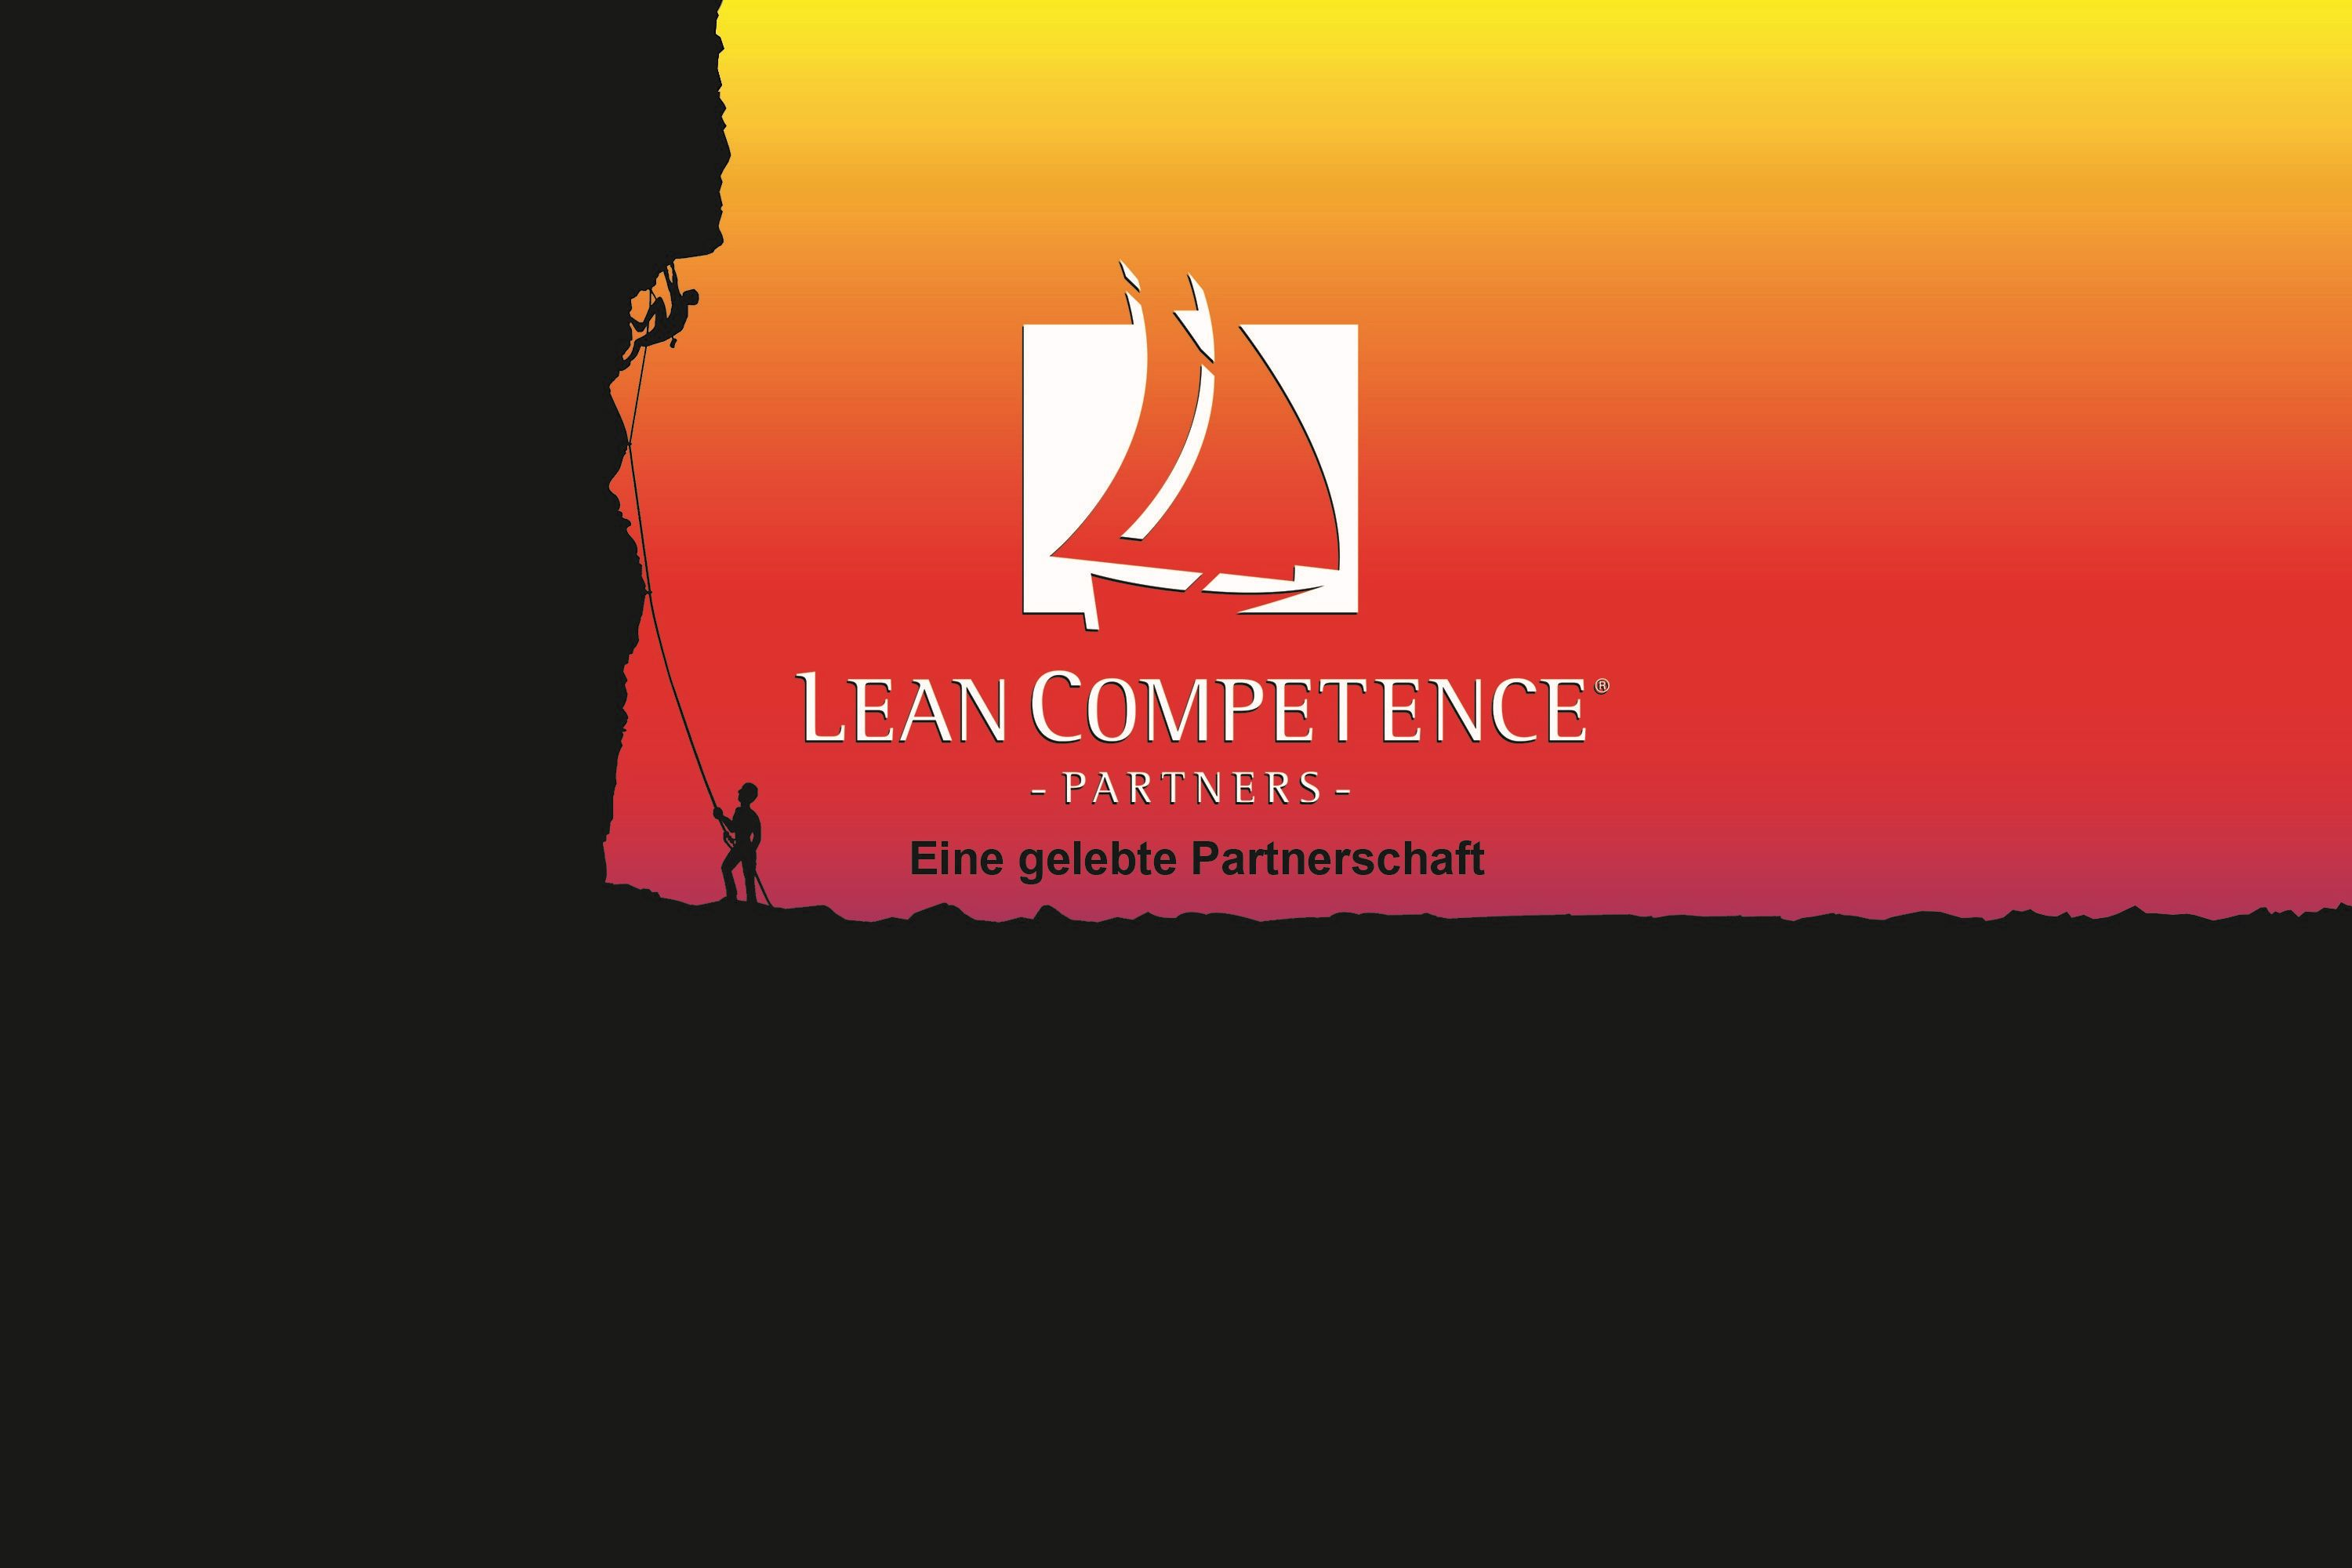 Lean Competence Partners